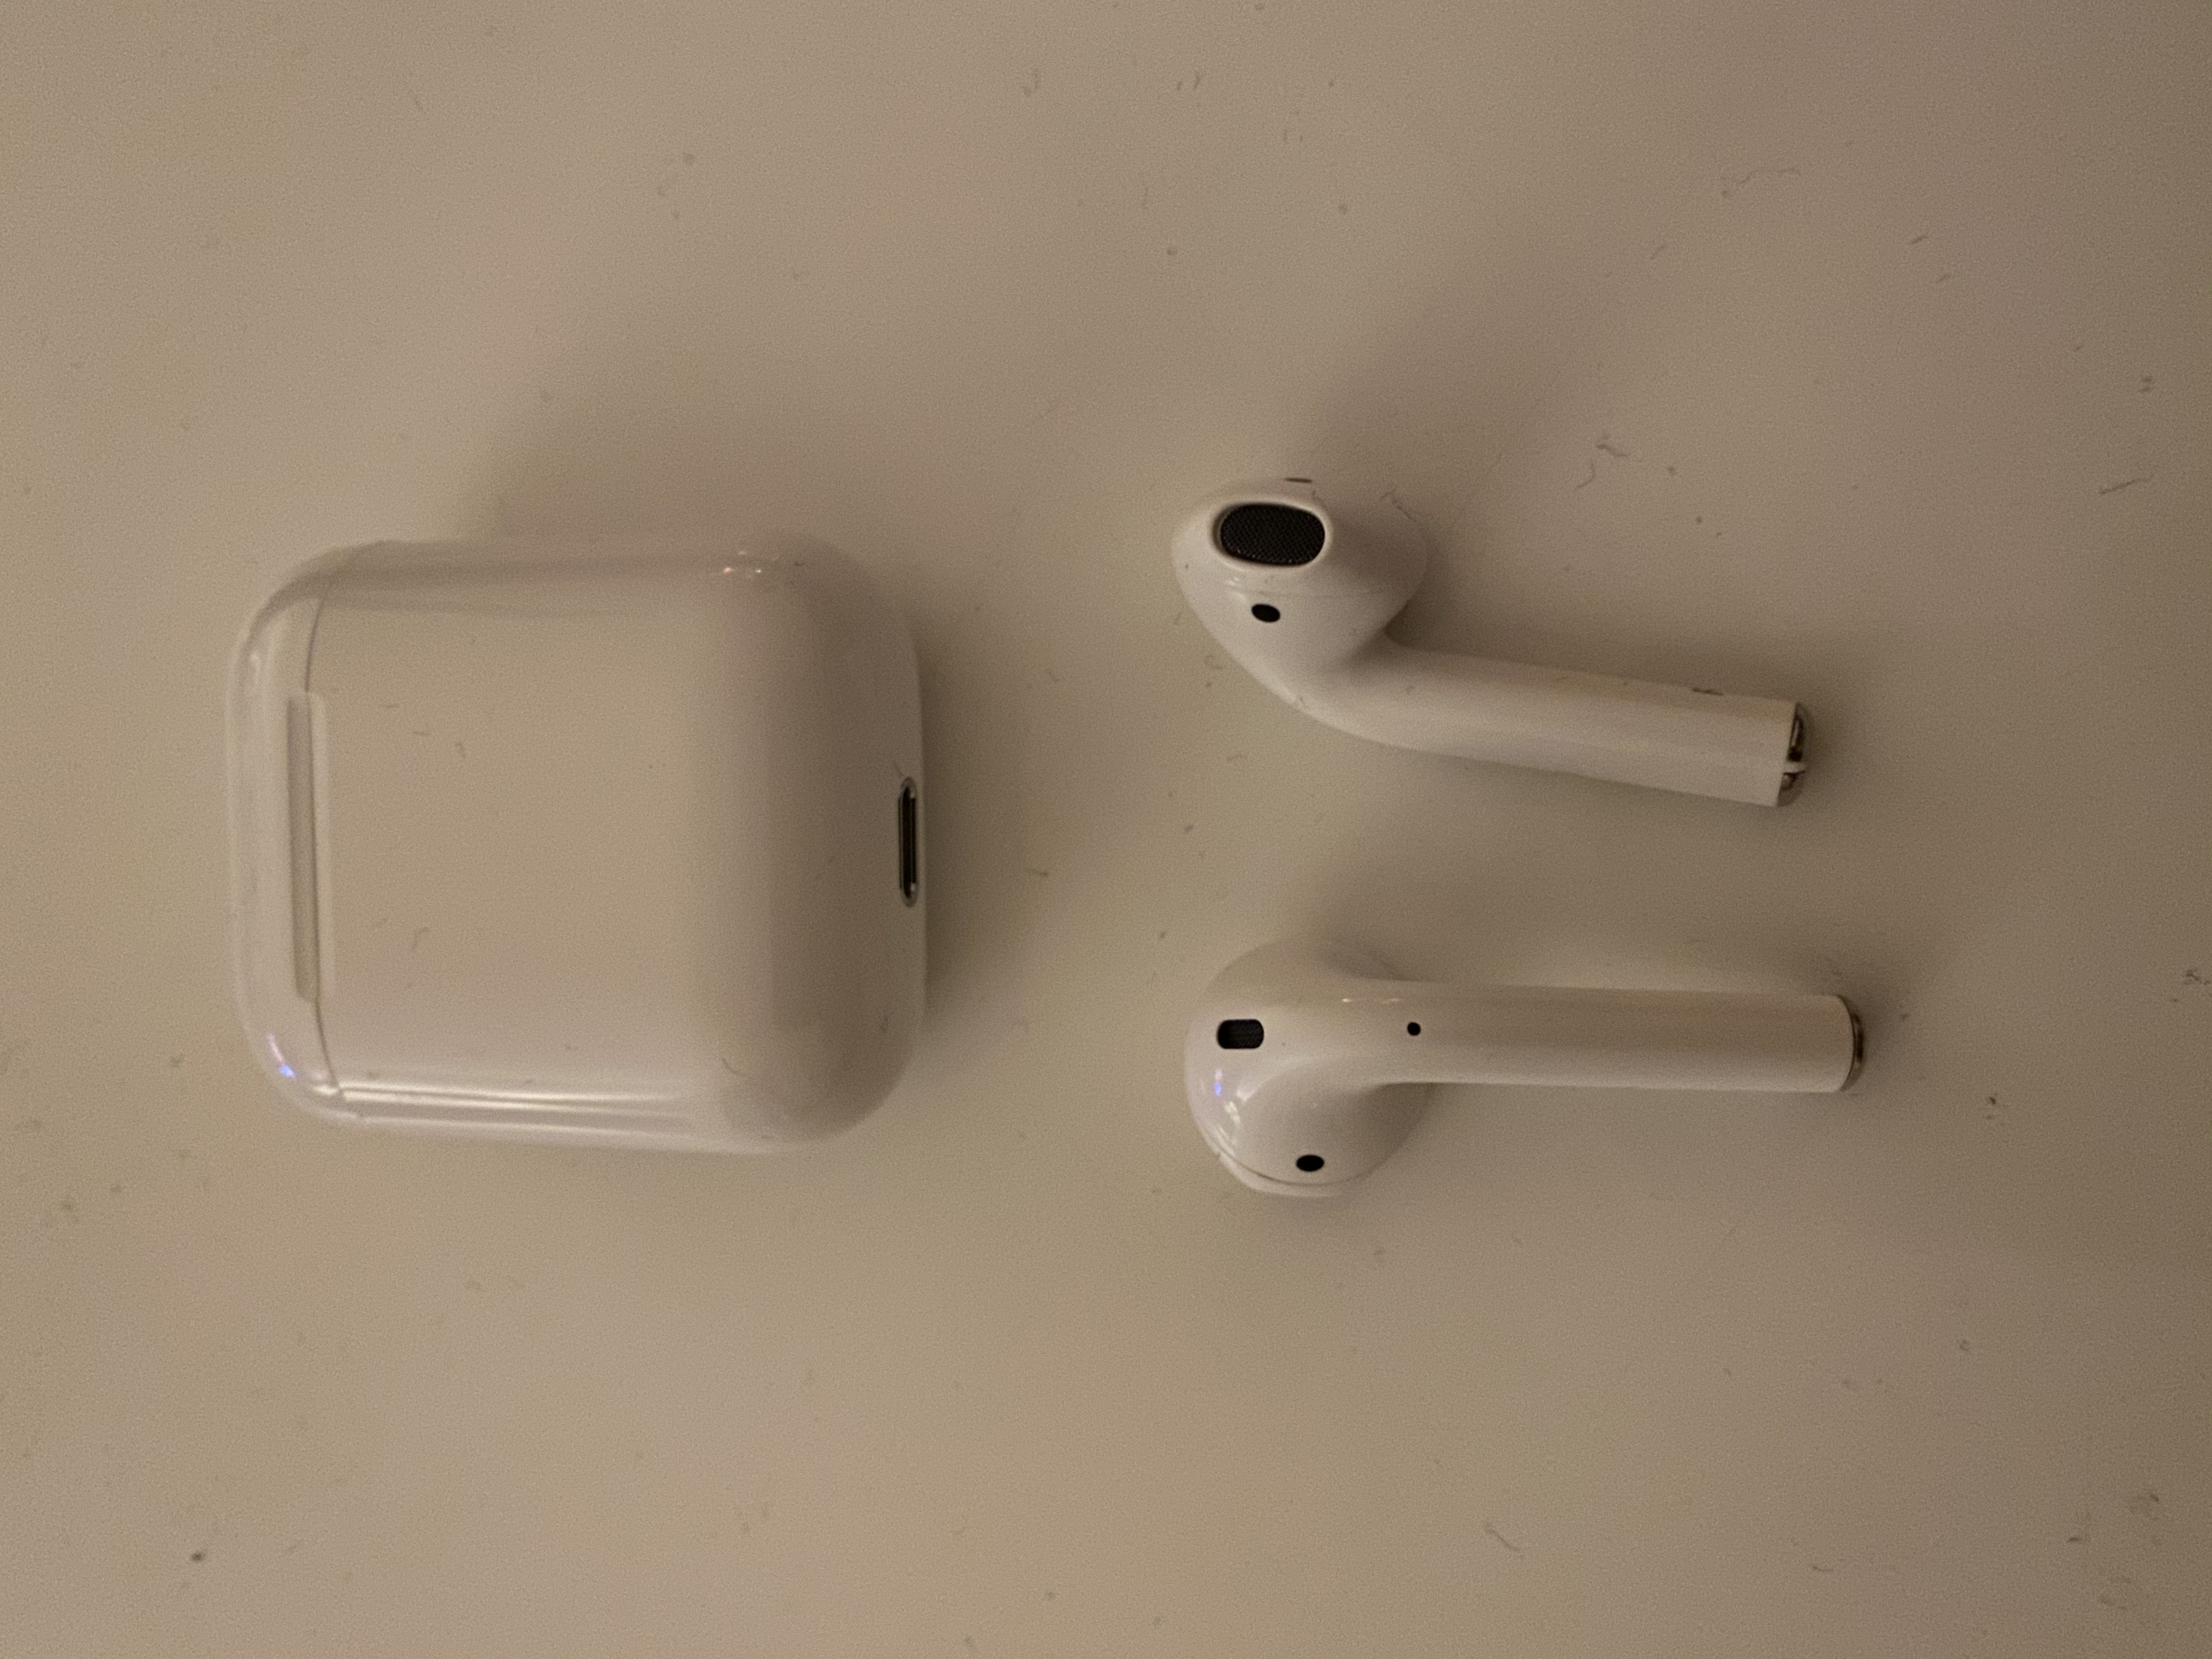 1:1 Airpods 2